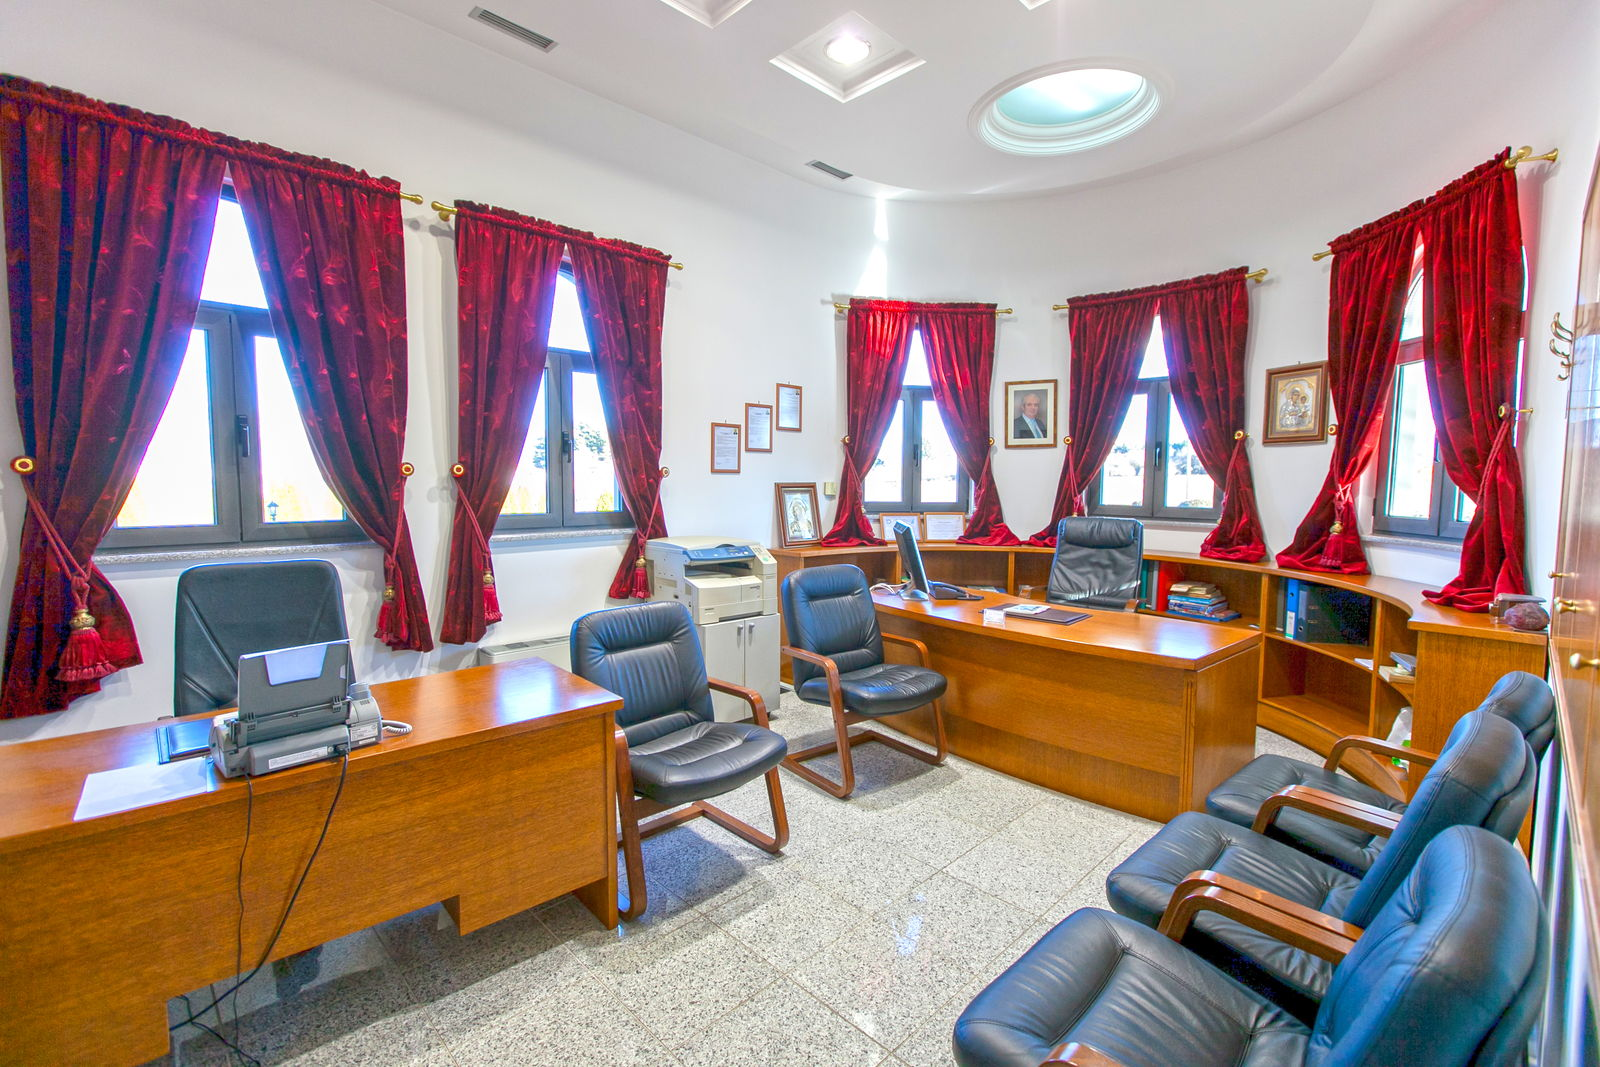 Funeral Home Megremis - Office